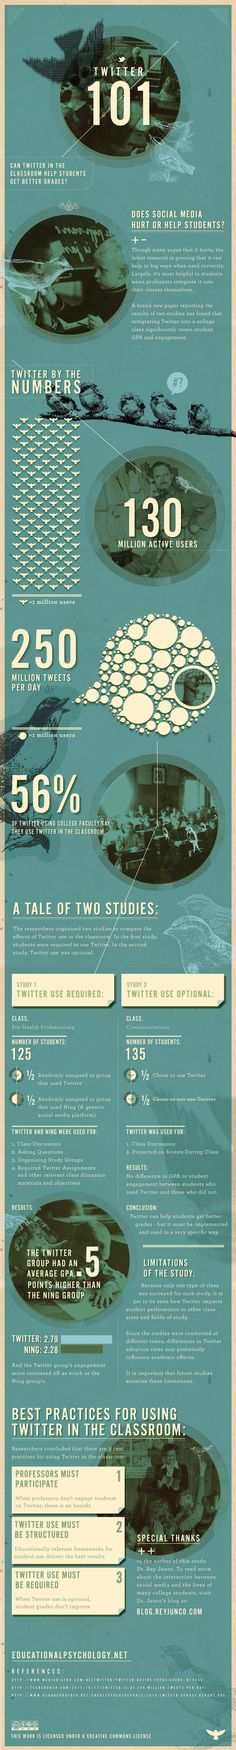 Can Twitter in the classroom hepl students get better grades? #infographic